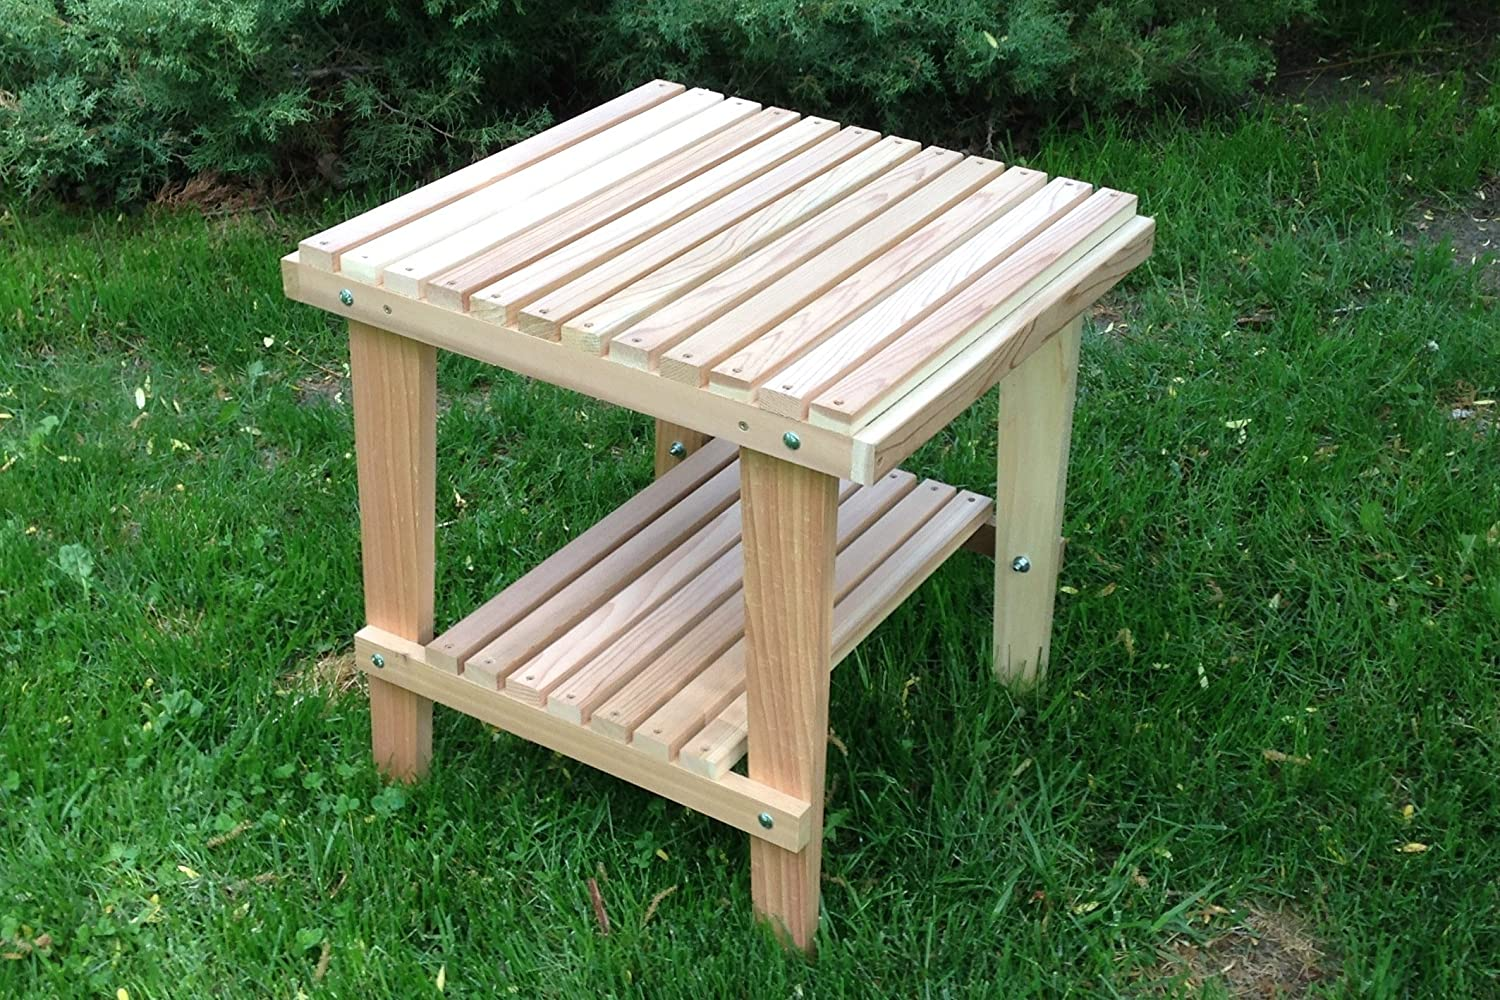 Amazon.com : Natural Cedar Side Table With Shelf, Amish Crafted : Garden U0026  Outdoor